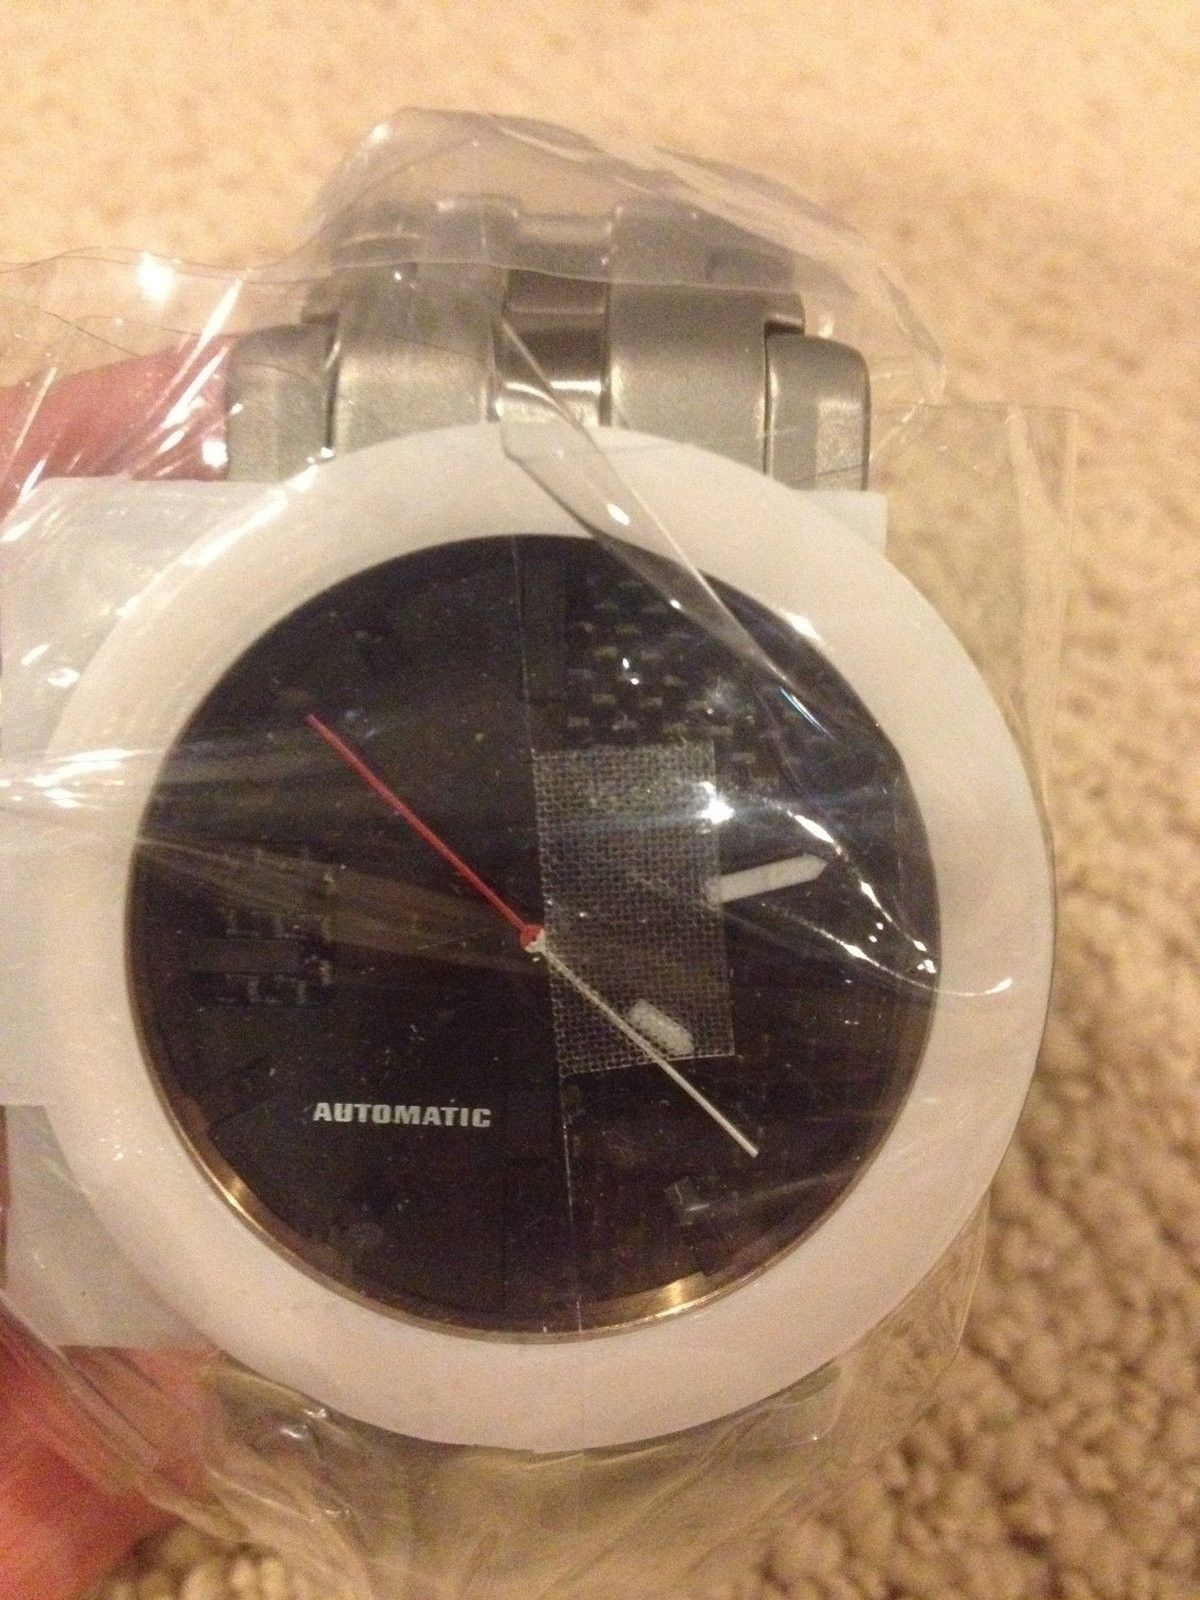 Gearbox Automatic--Titanium Band--New in Box - photo 3.JPG